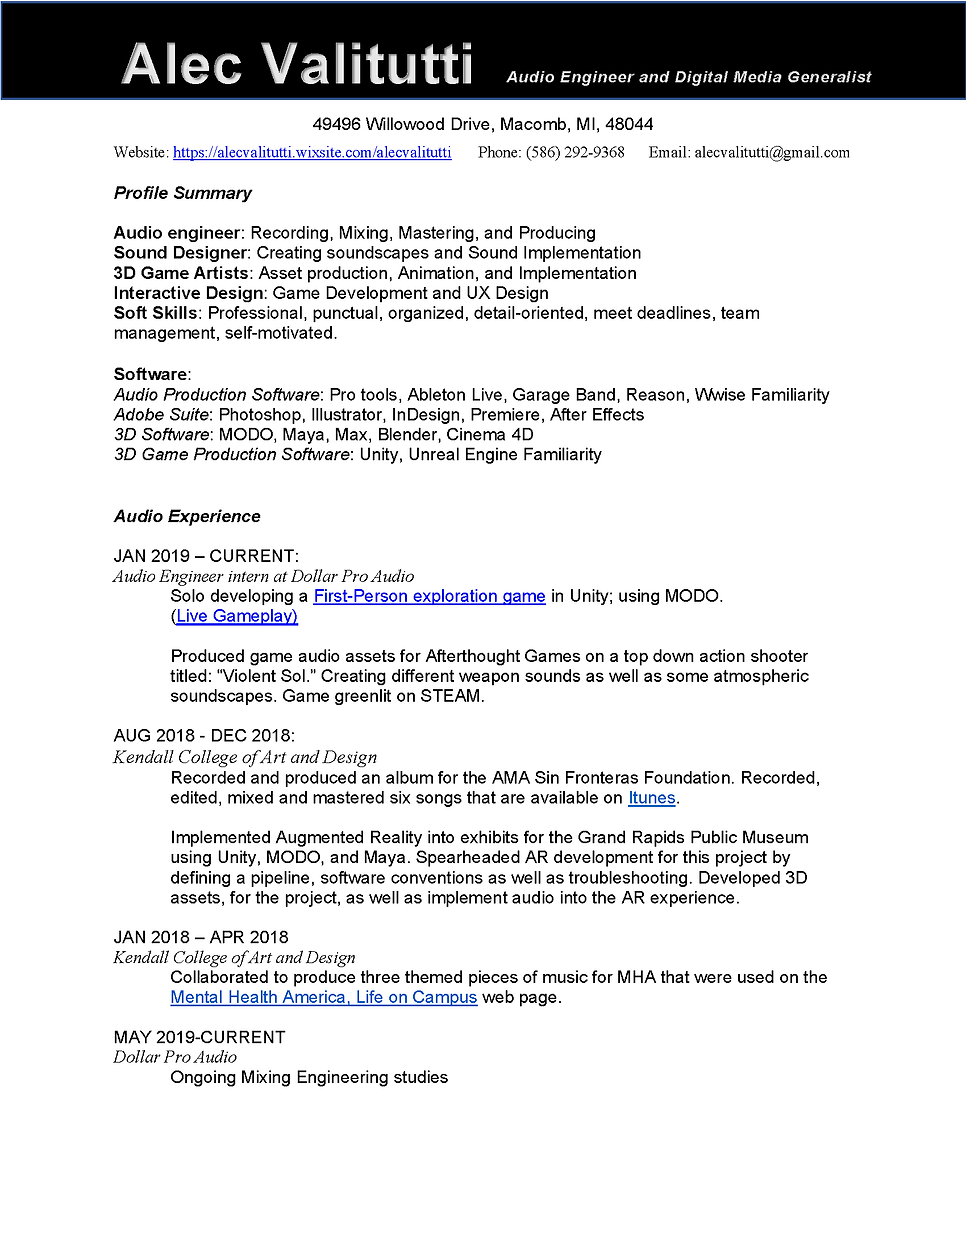 Valitutti_Alec_Resume_Formatted_Updated_